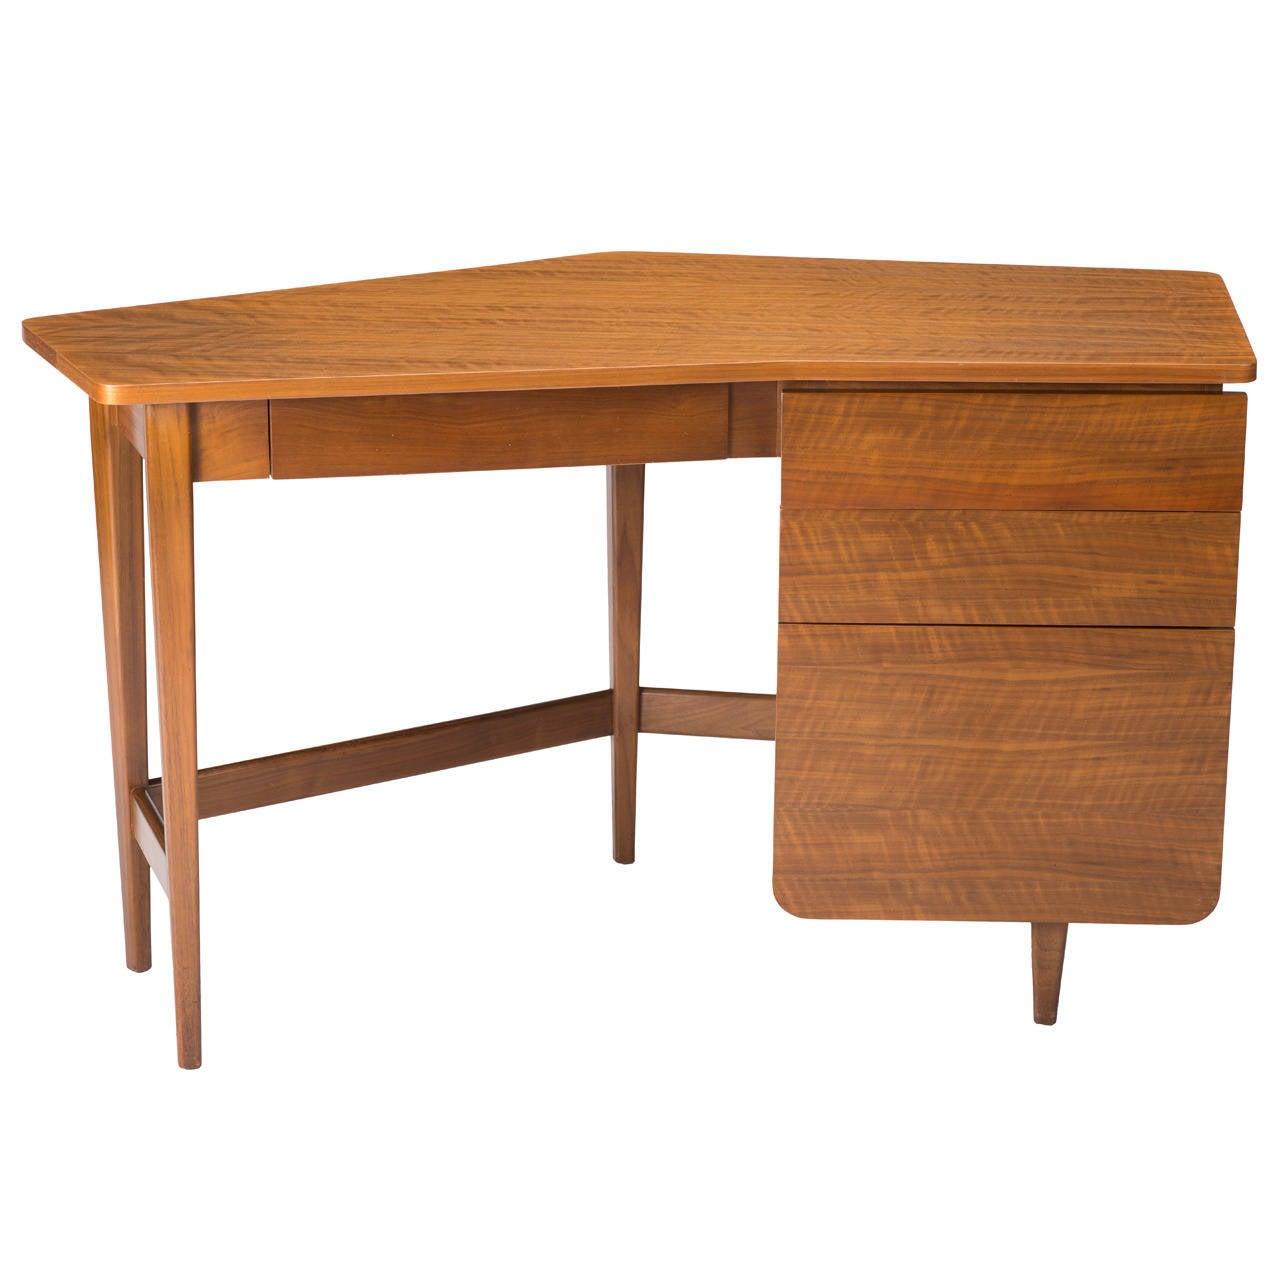 Desk by Bertha Schaefer for Singer and Sons